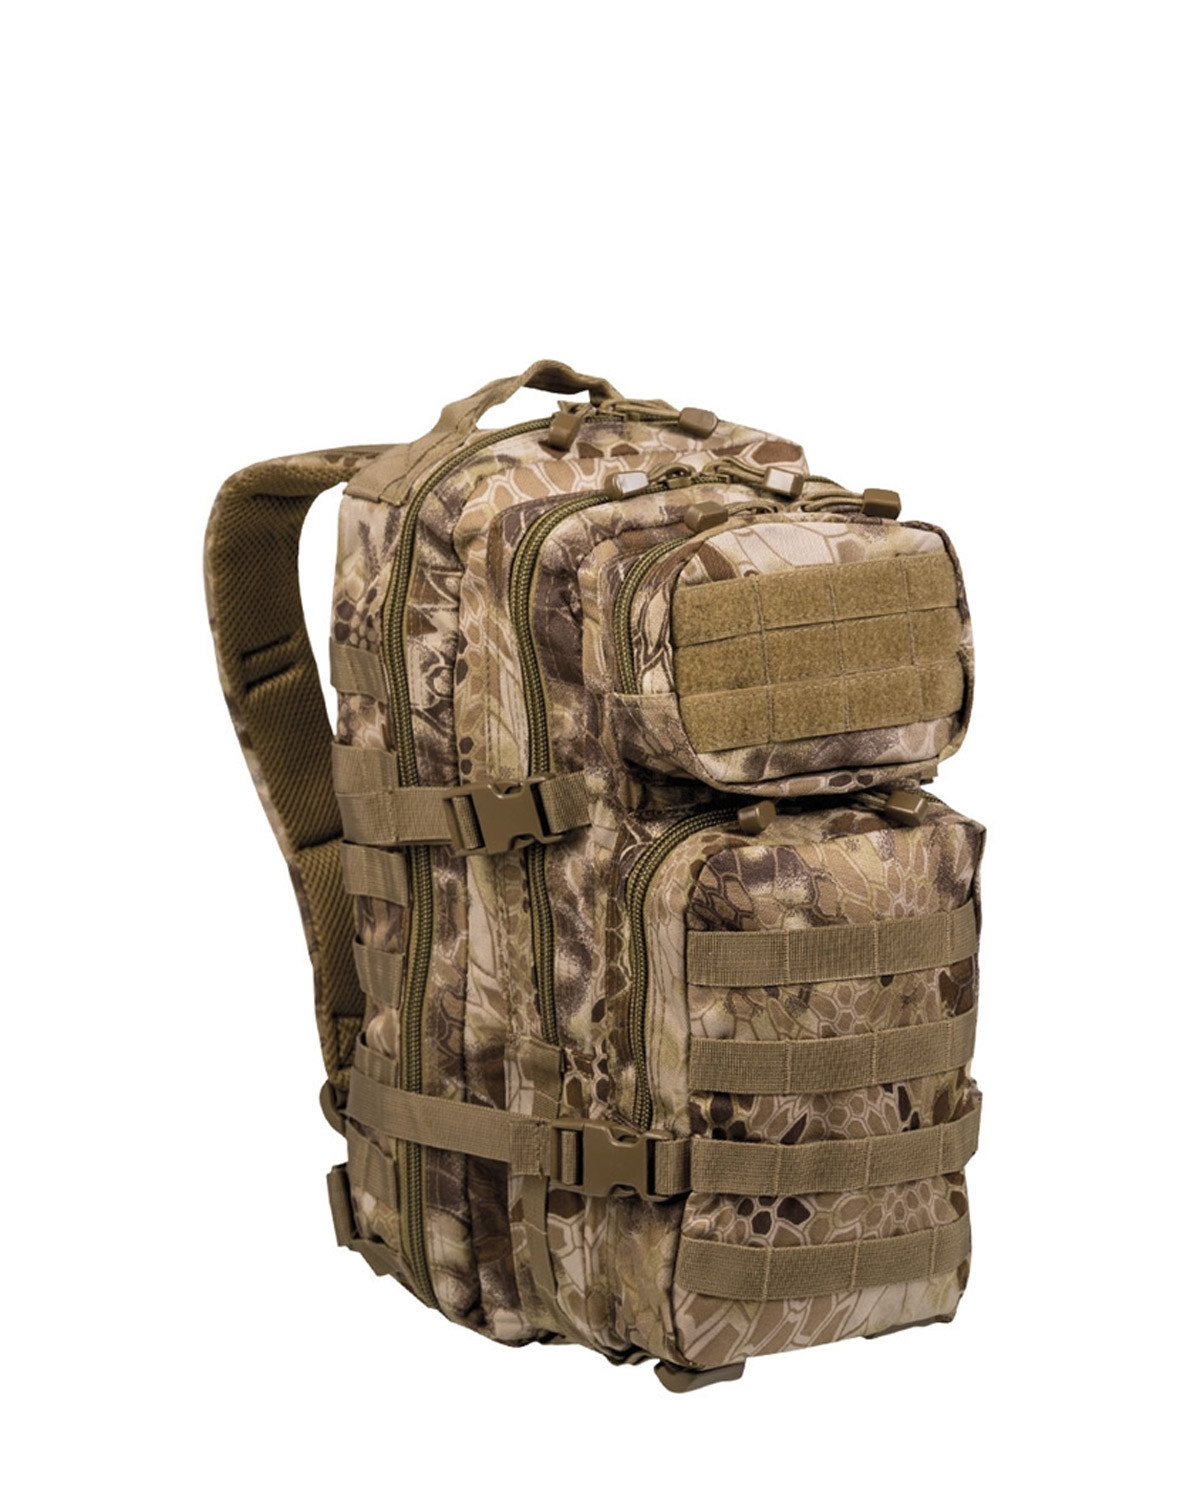 Image of   Mil-Tec U.S. Assault Rygsæk - 20 liter (Mandra Tan camo, One Size)